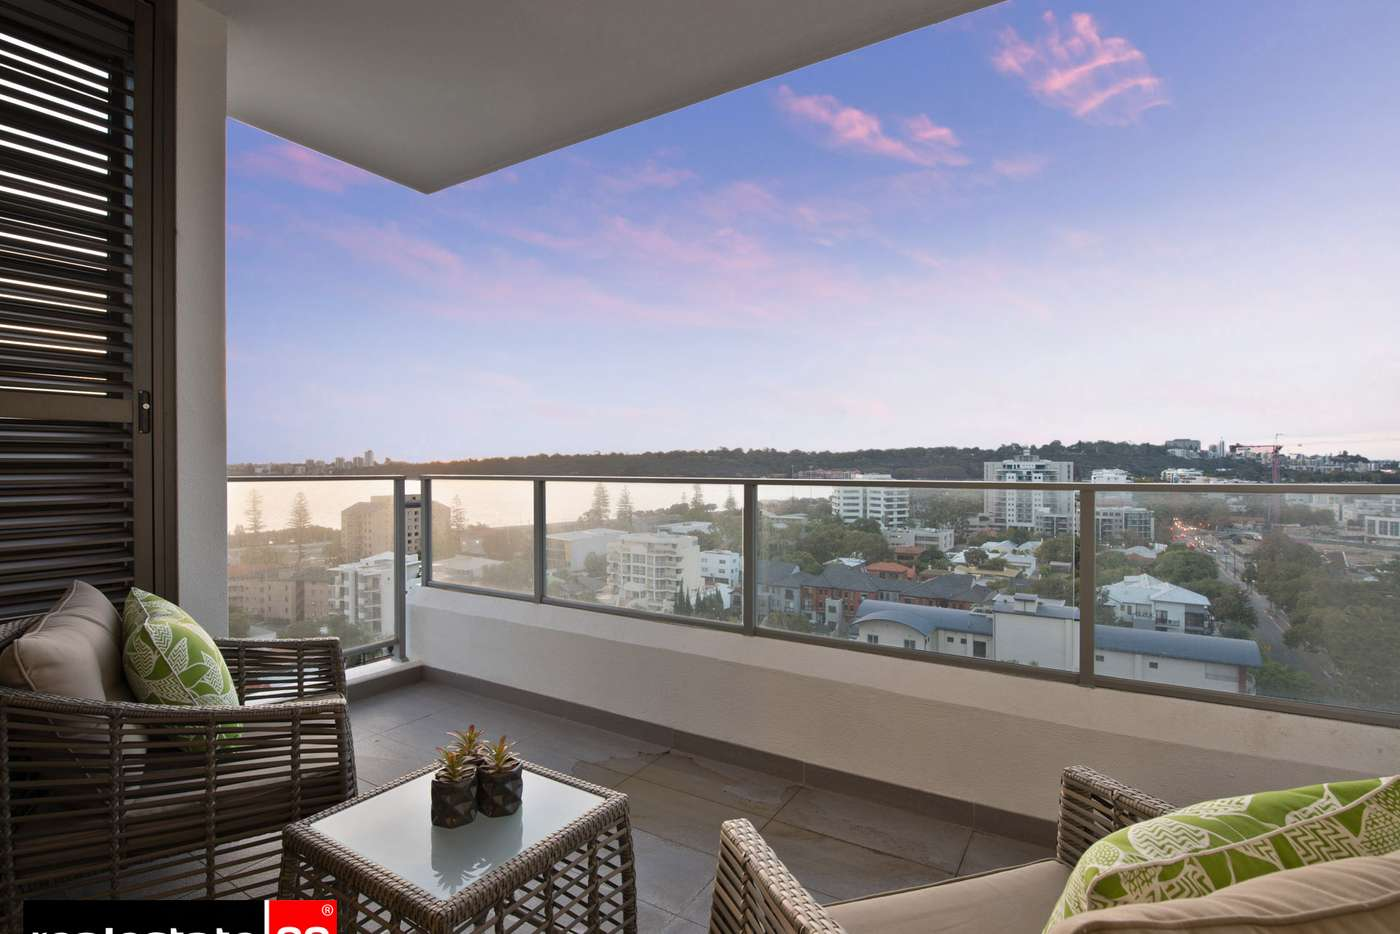 Main view of Homely apartment listing, 1001/30-34 Charles Street, South Perth WA 6151